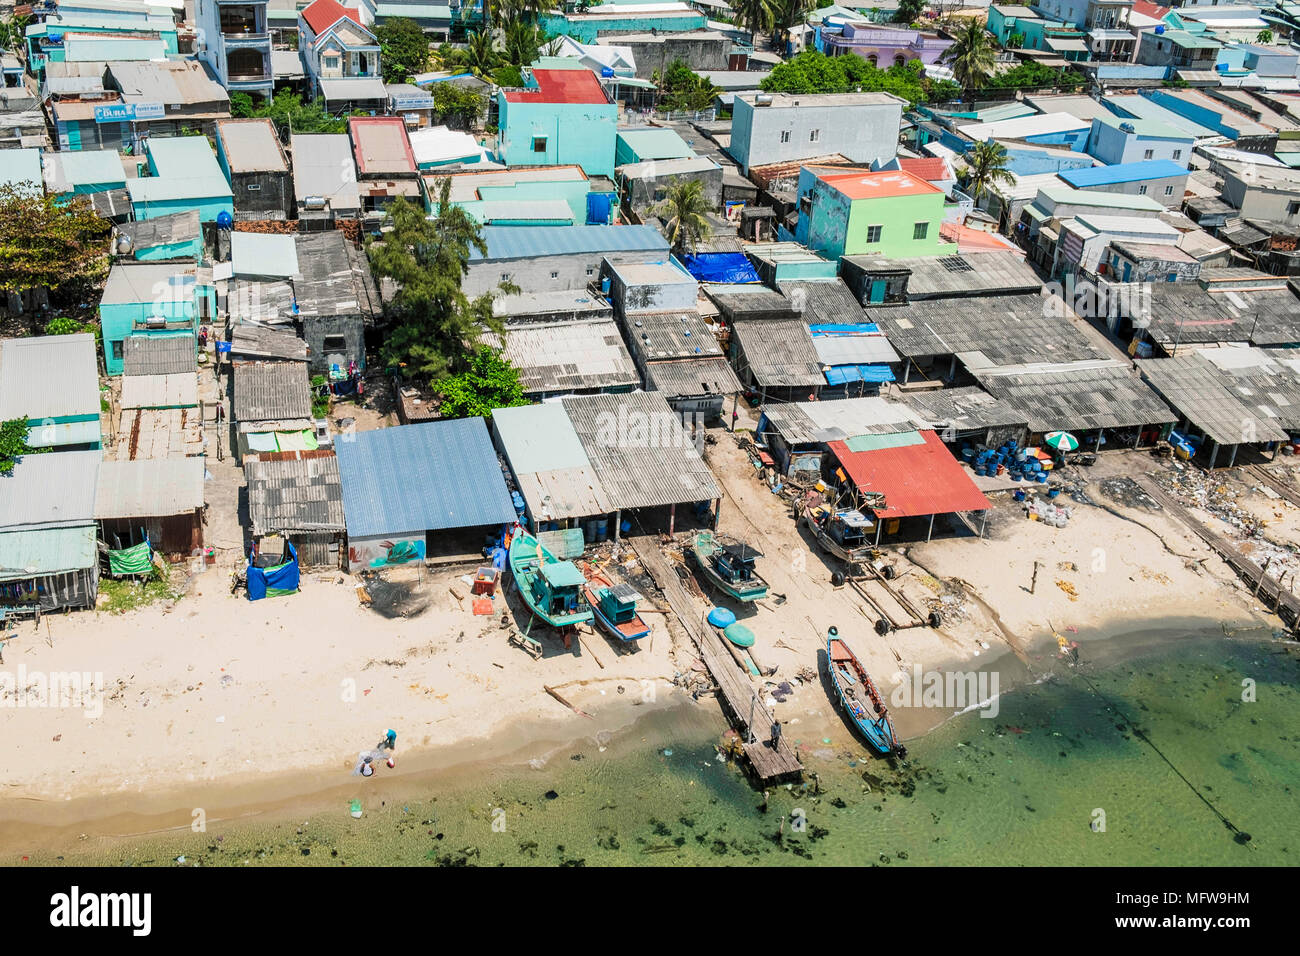 Aerial view of poor housing in An Thoi fishing village, southern Phu Quoc island, Vietnam - Stock Image